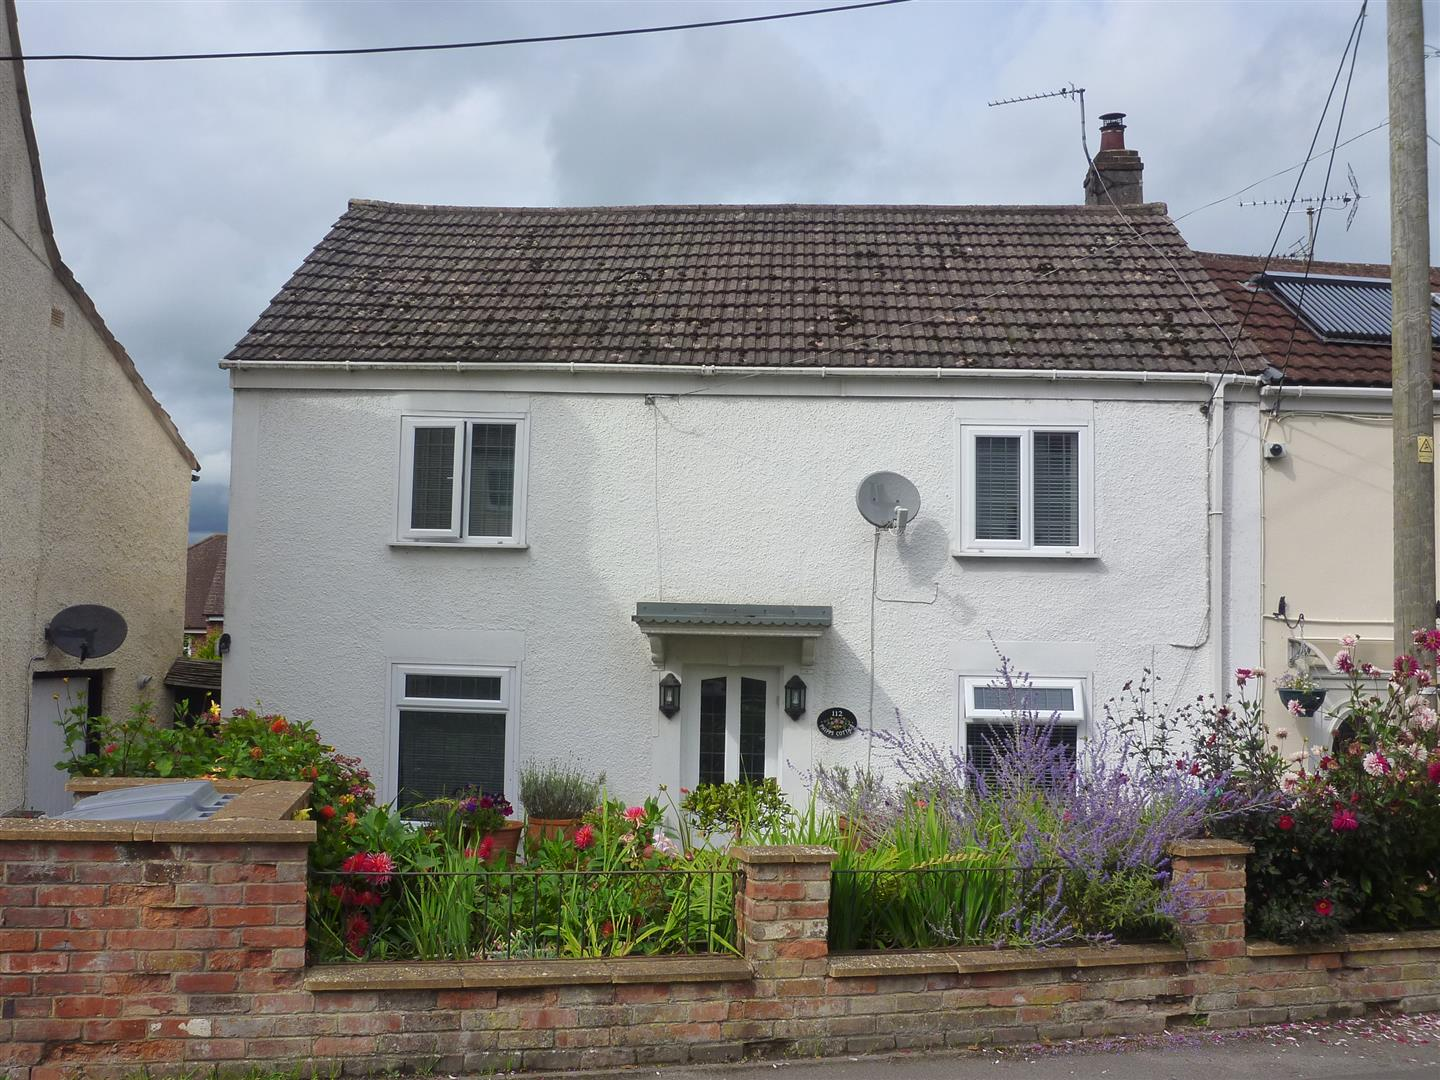 3 Bedrooms Cottage House for sale in Westbury Leigh, Westbury